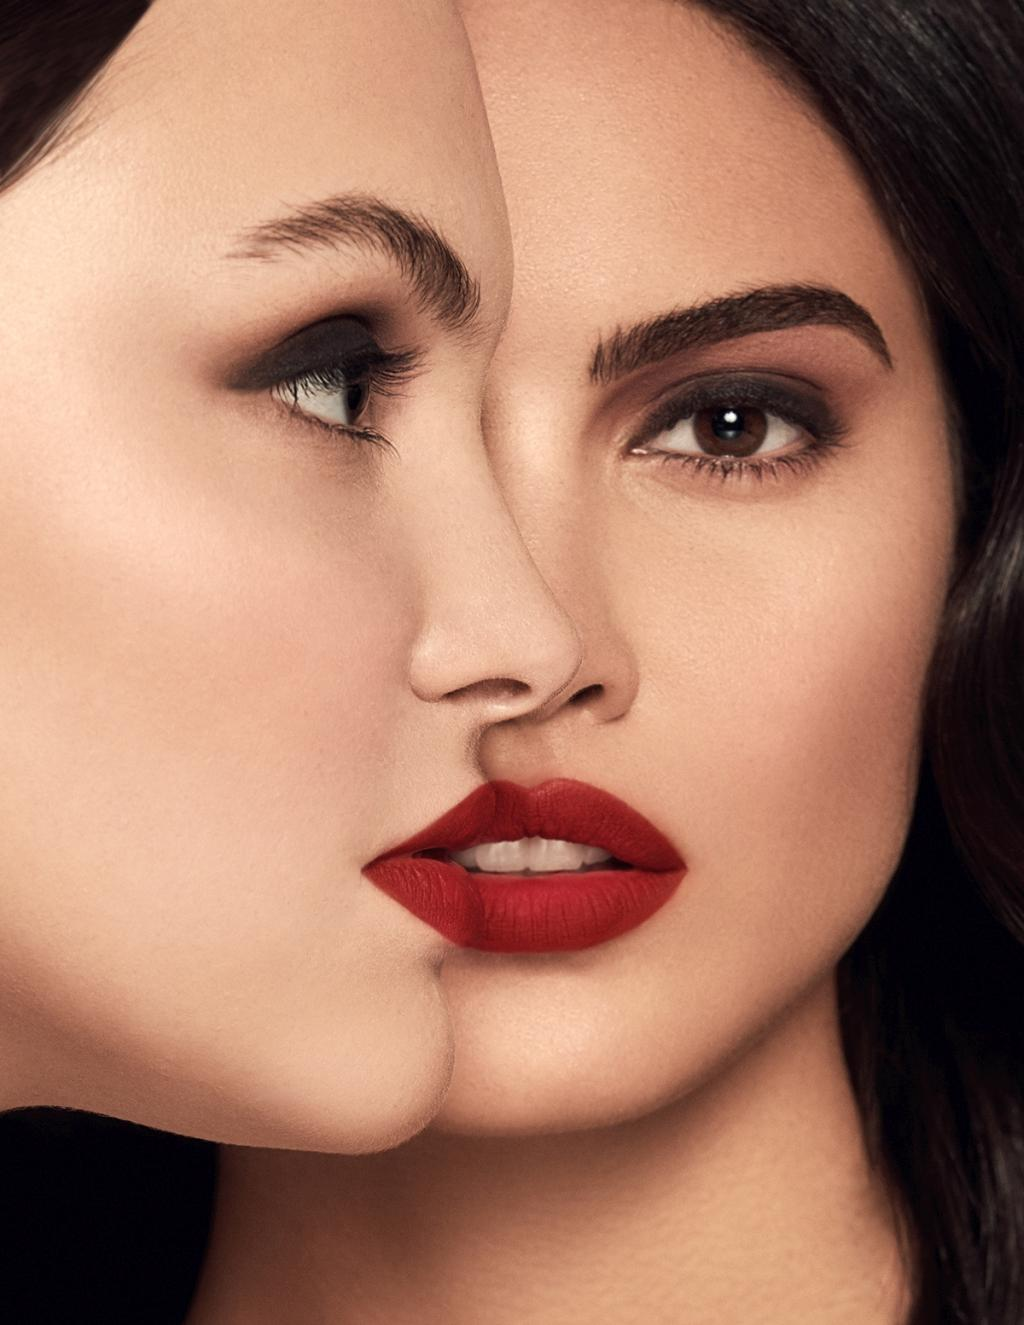 beauty industry cosmetic photography by alena saz